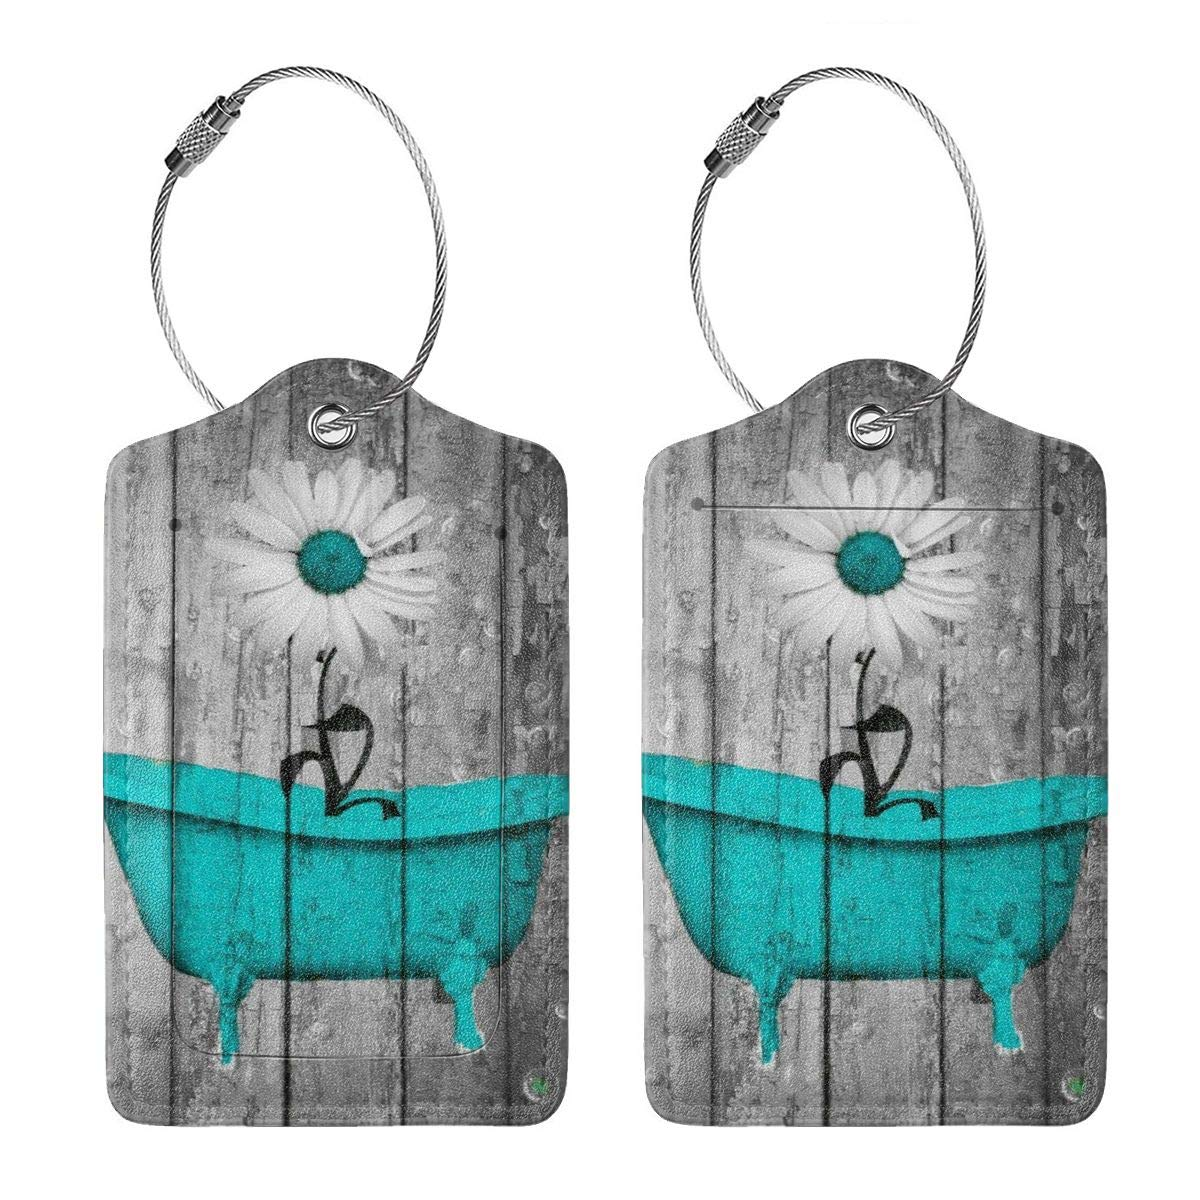 Turquoise Gray Country Daisy Flower Bathtub Luggage Tag Label Travel Bag Label With Privacy Cover Luggage Tag Leather Personalized Suitcase Tag Travel Accessories